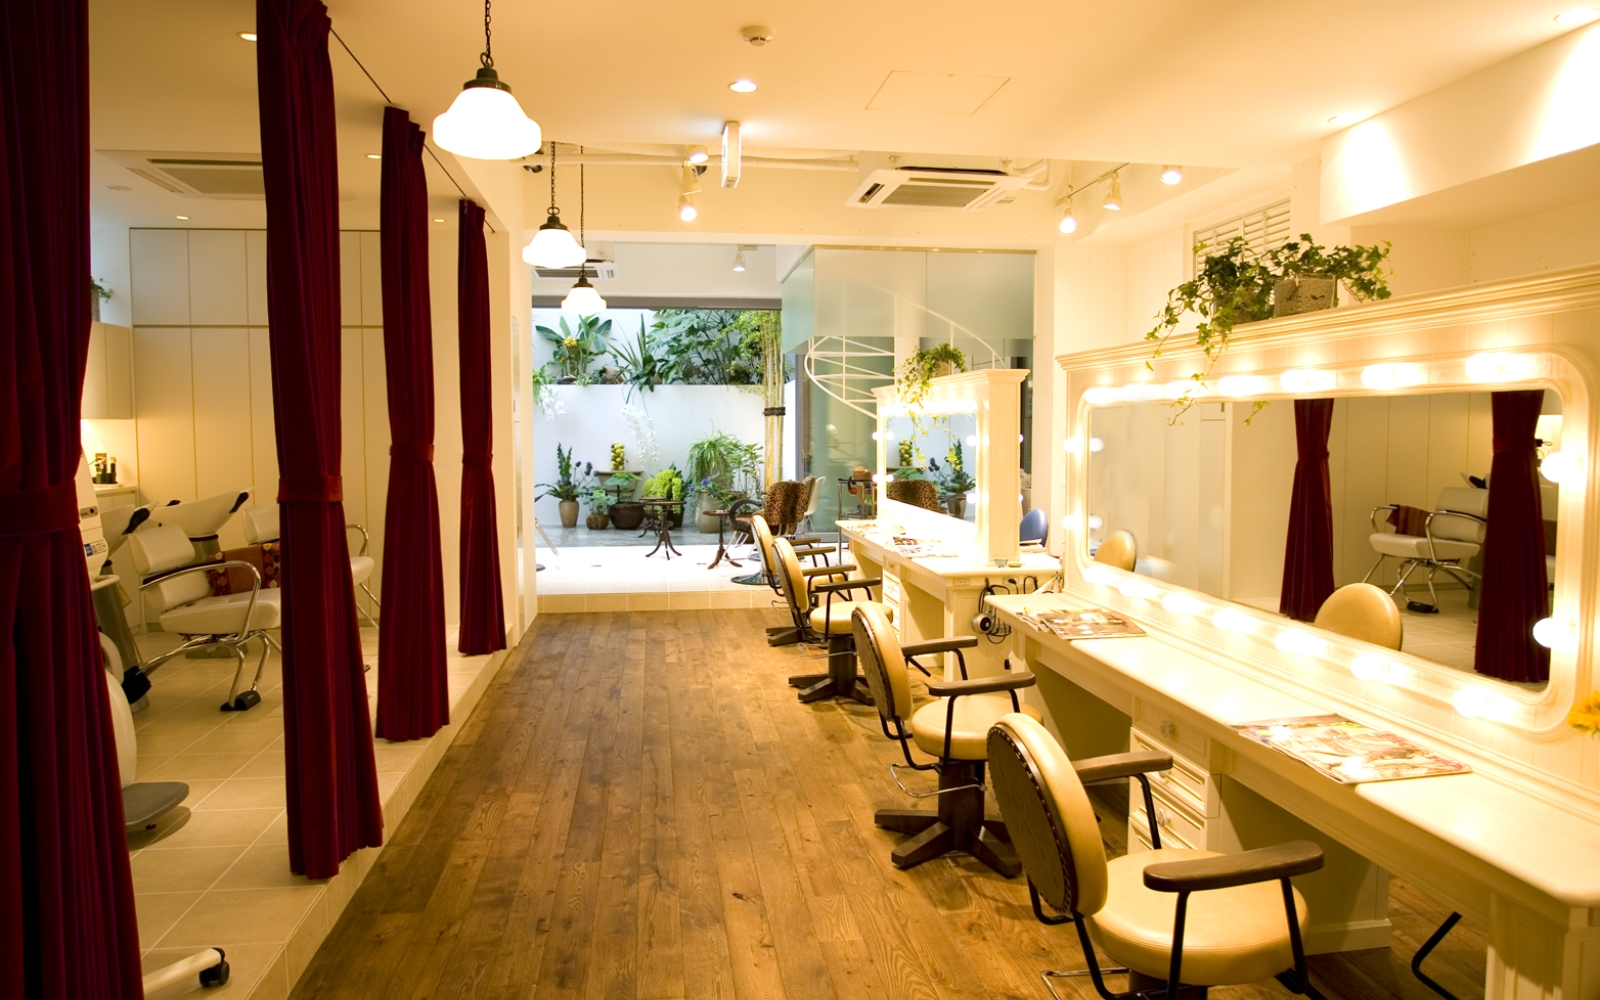 Twiggy - 50 Beauty Salons